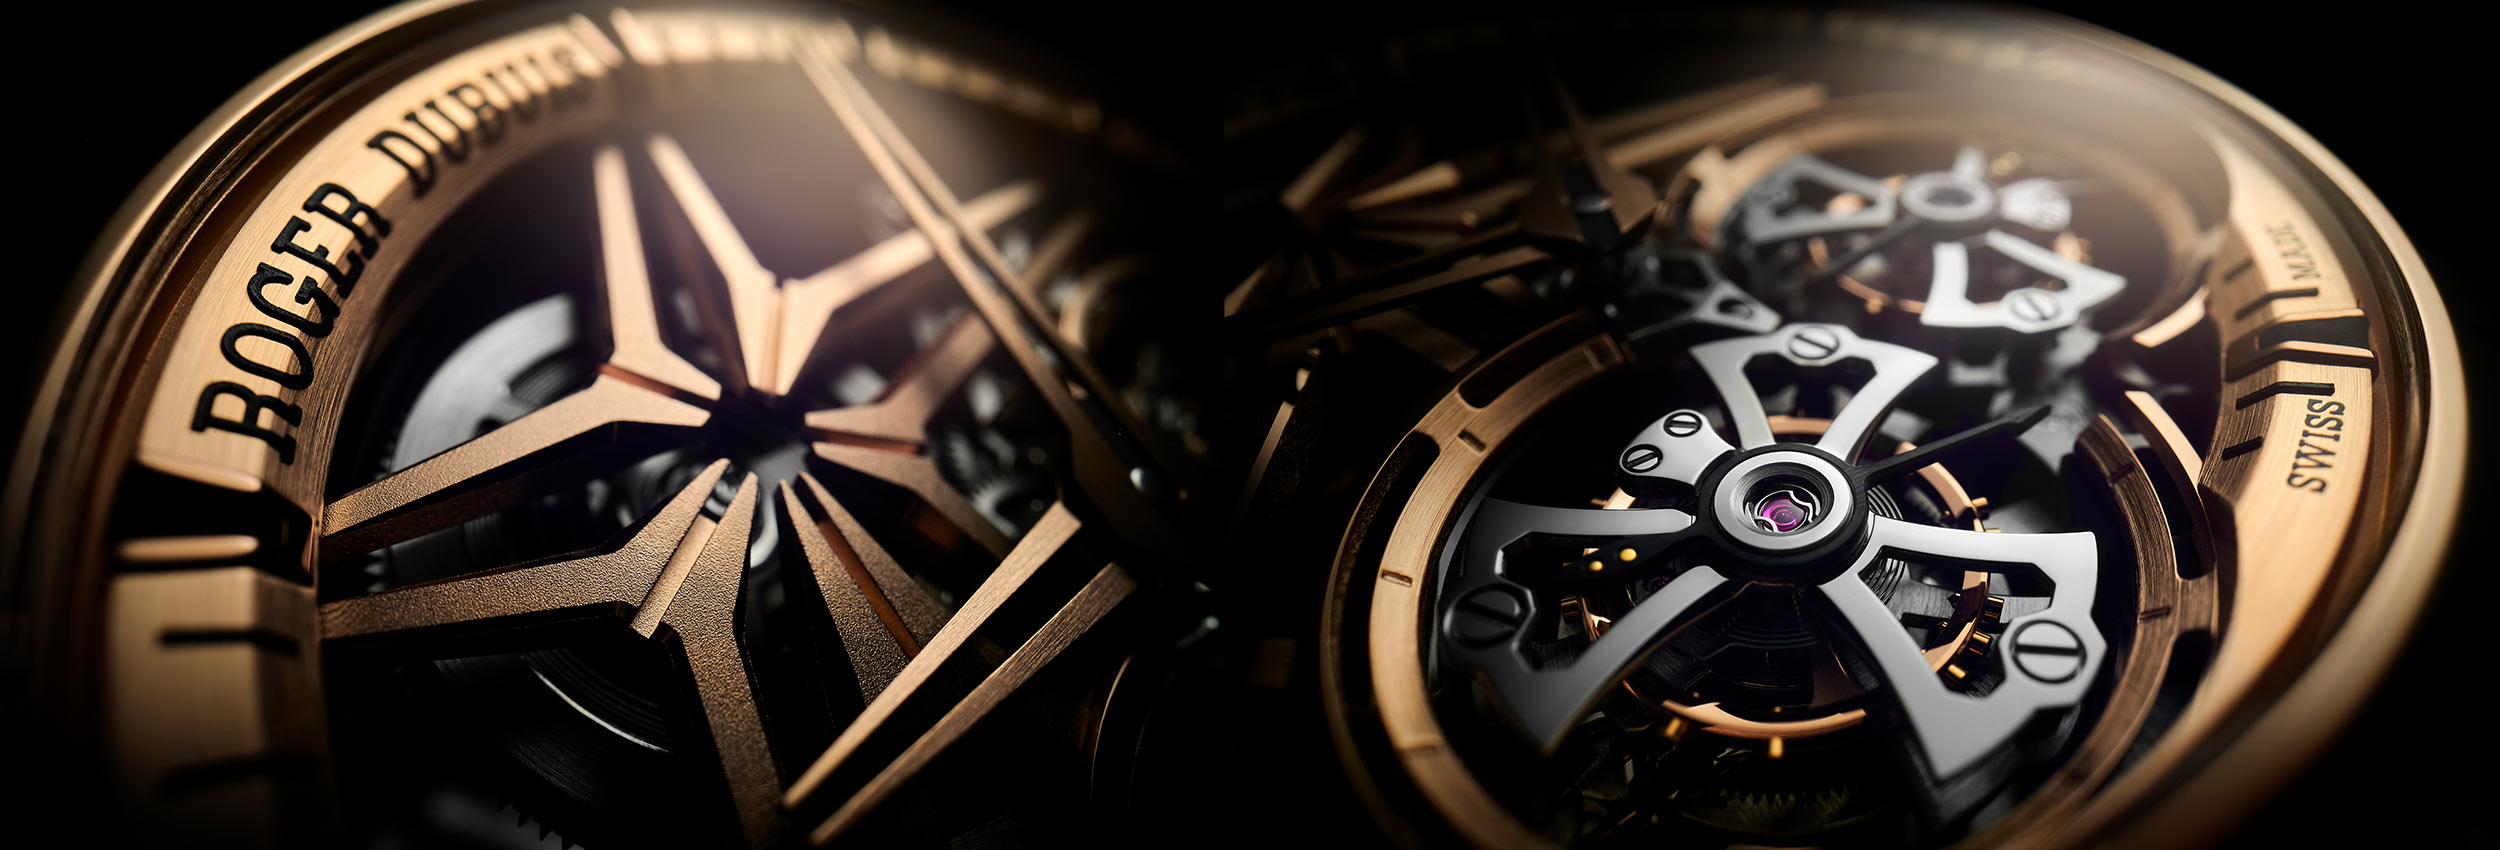 Roger-Dubuis-Excalibur-Double-Flying-Tourbillon-RDDBEX0920-and-RDDBEX0819-Details-CloseUp.jpg